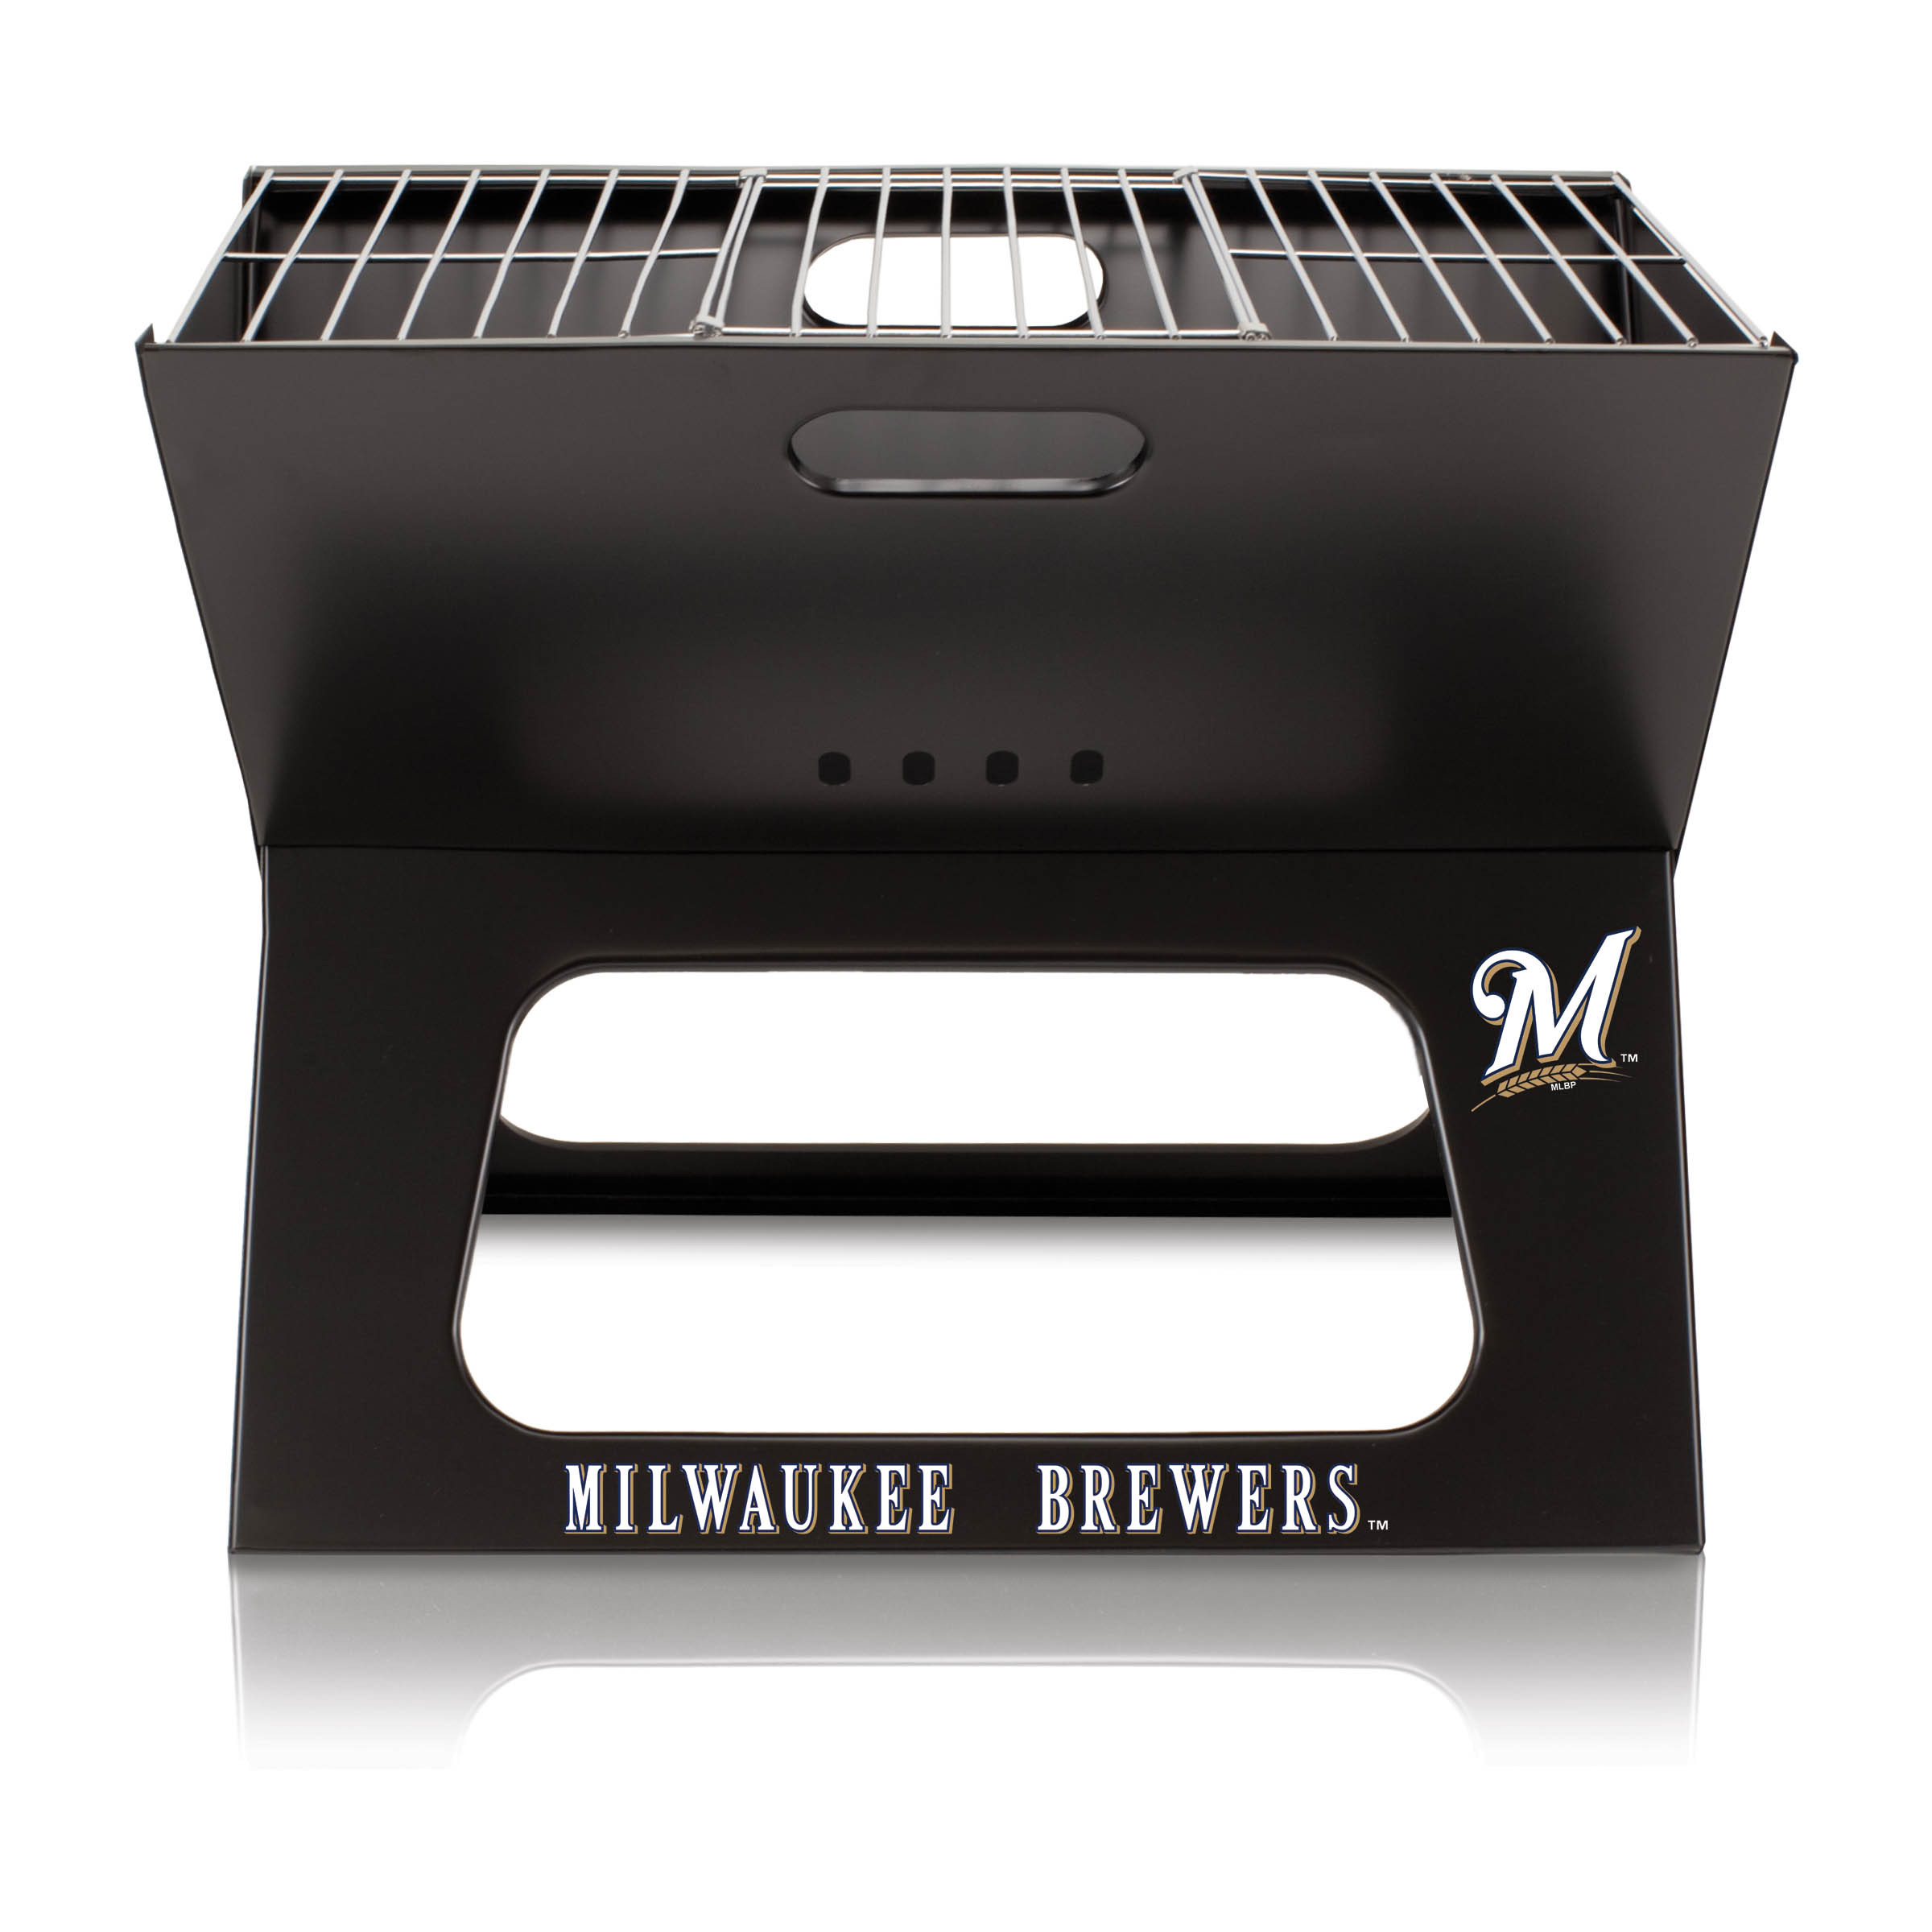 Milwaukee Brewers X-Grill Portable BBQ - No Size